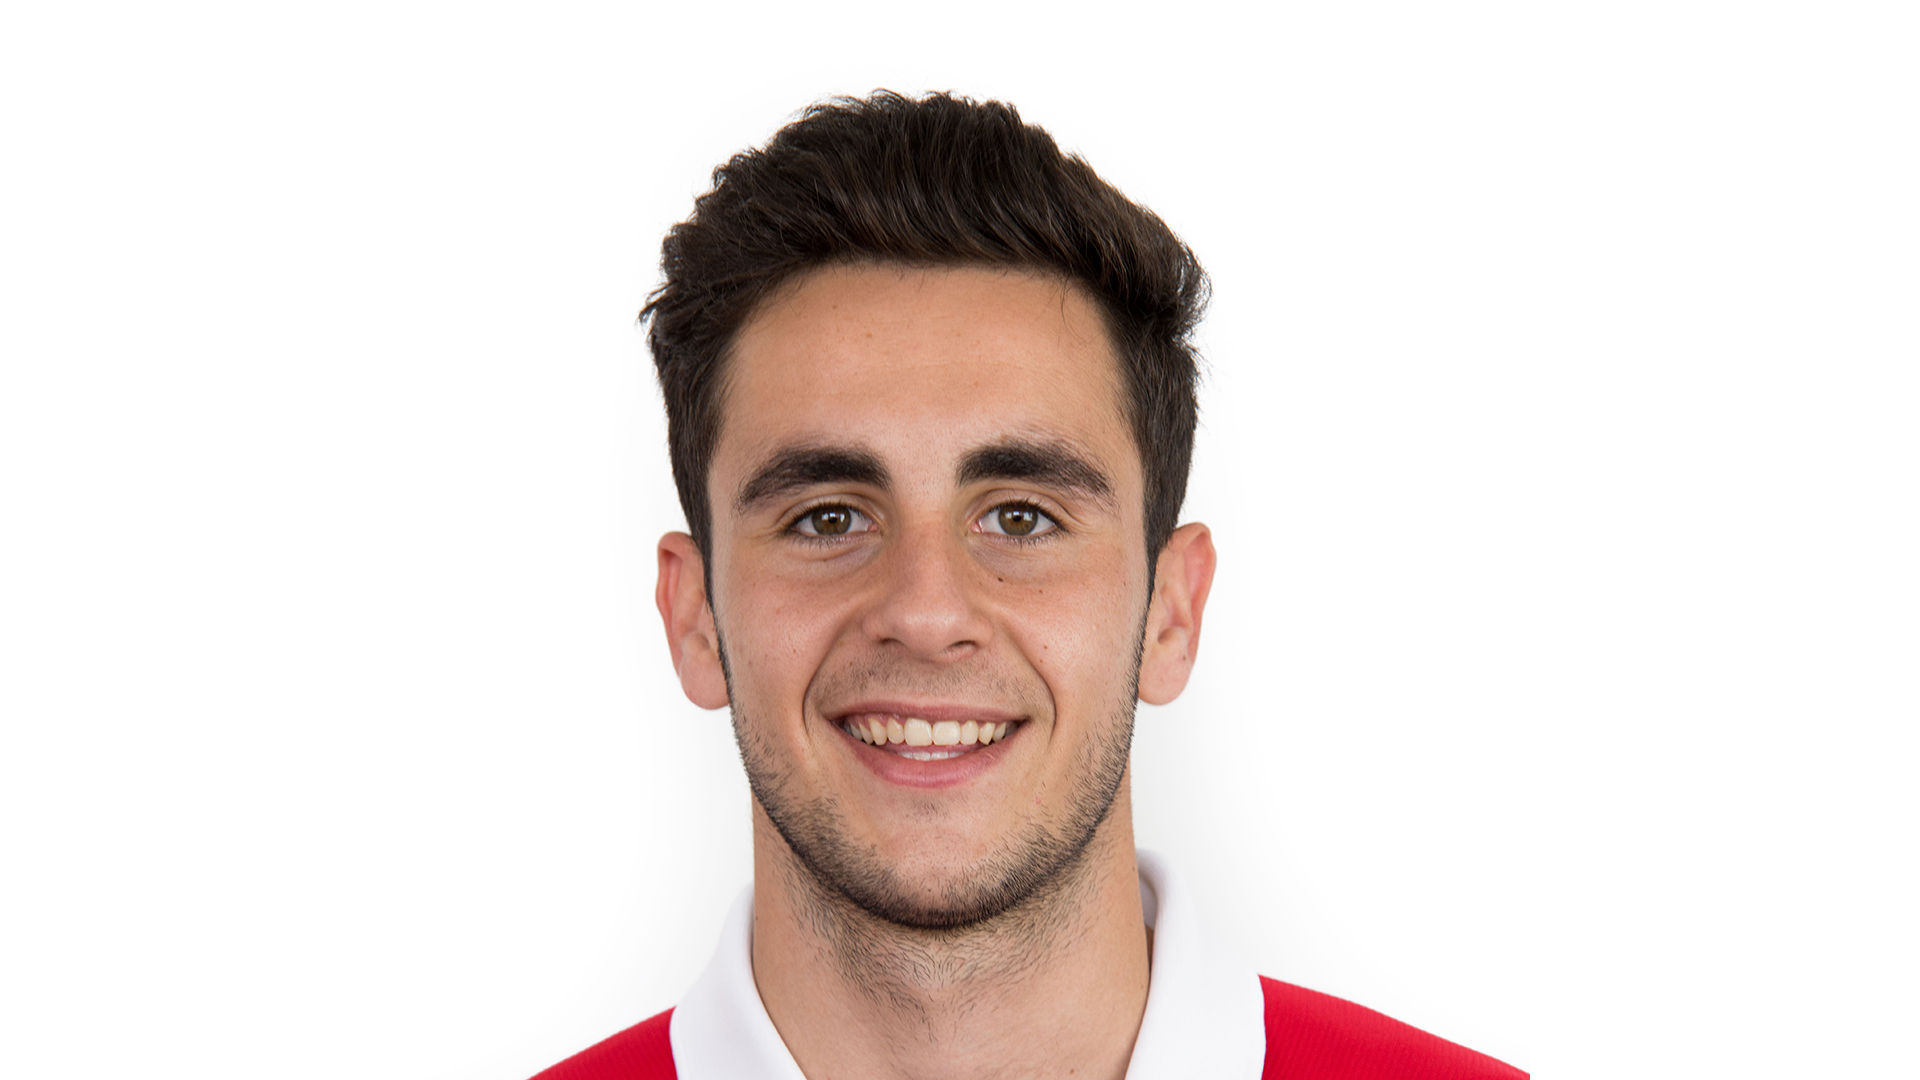 Iurgi Oteo, on-loan to Barakaldo CF